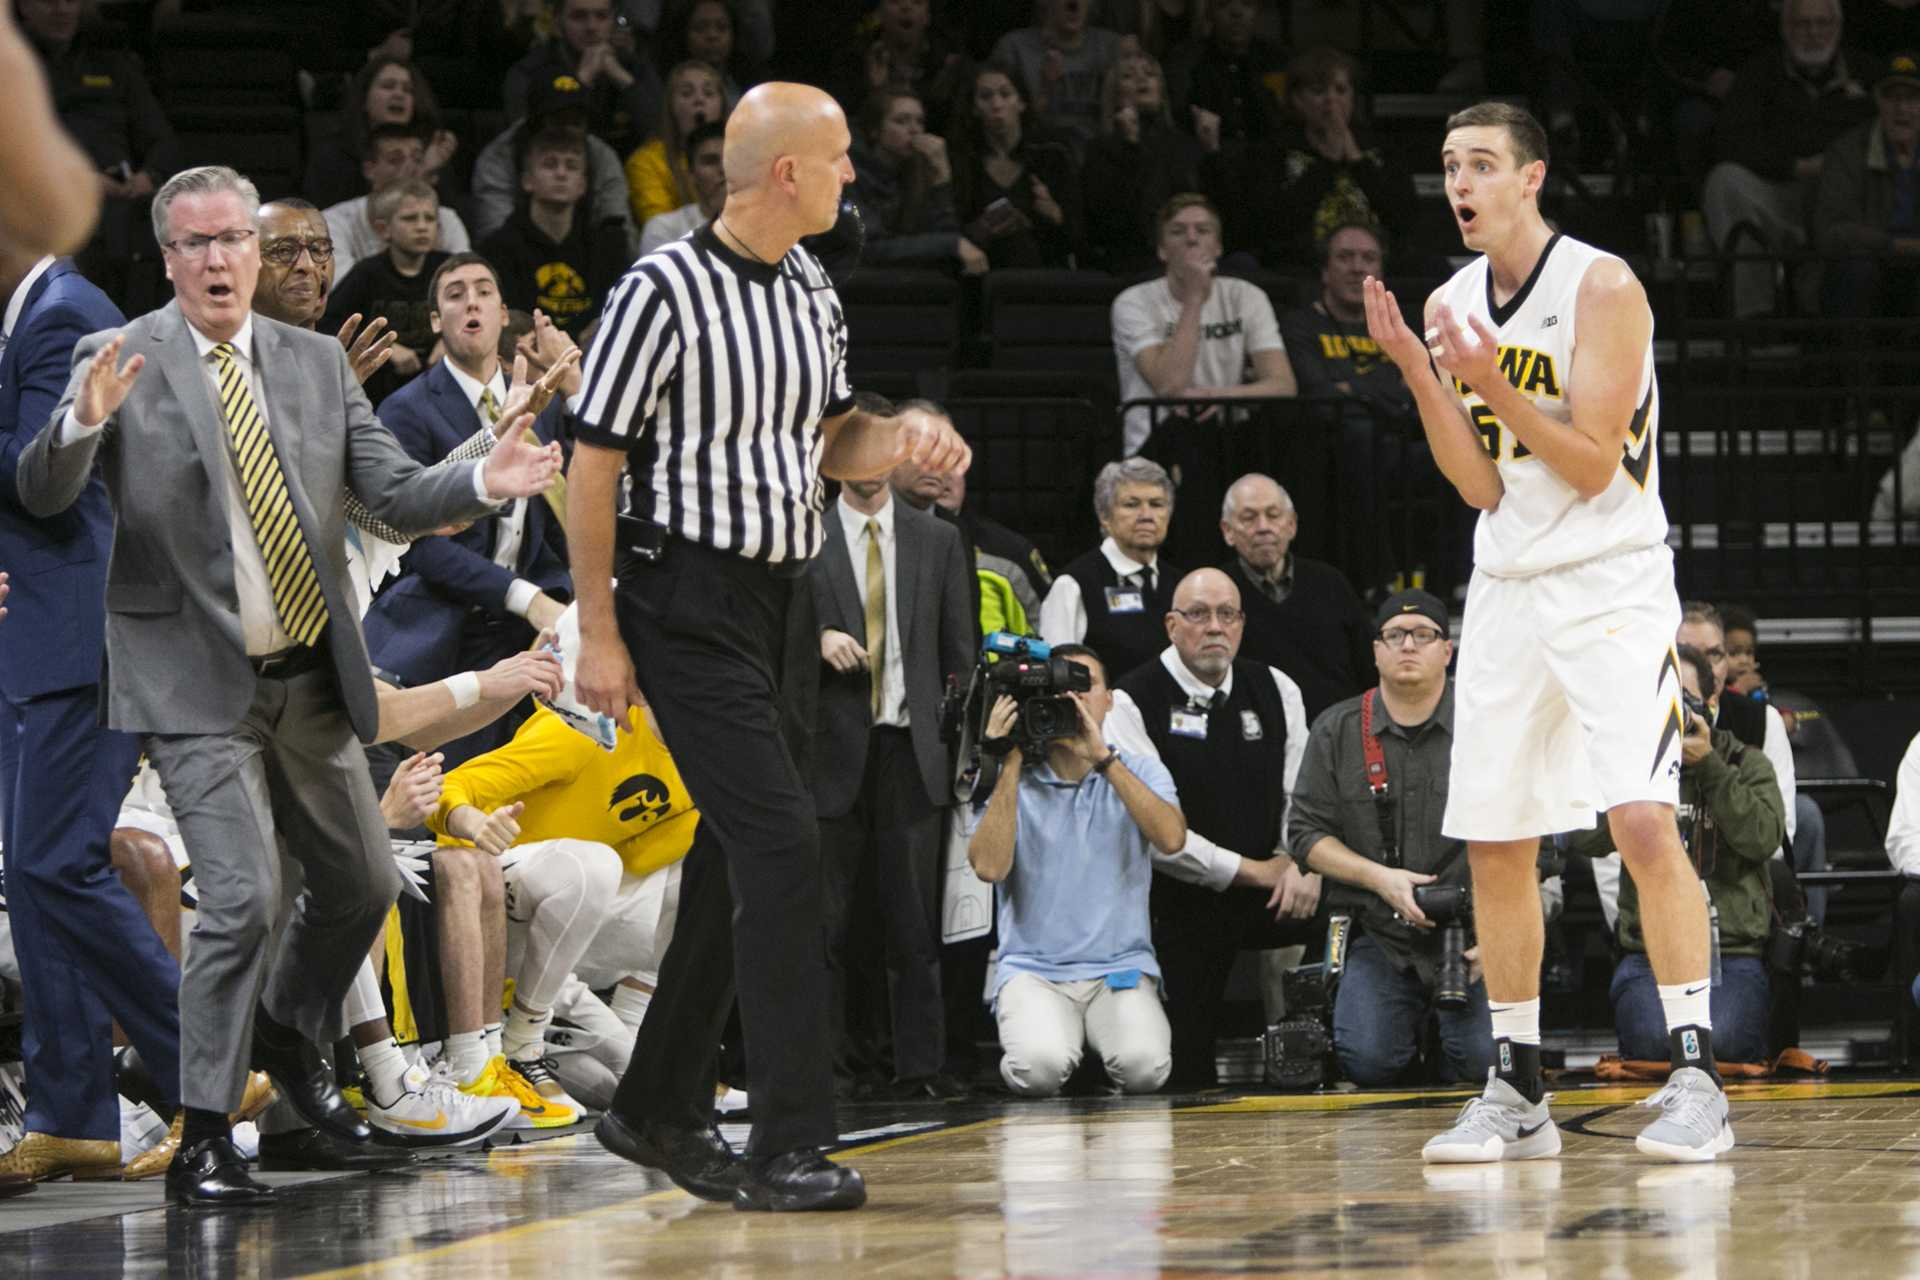 Iowa forward Nicholas Baer reacts to a foul called against him during an Iowa/Penn State men's basketball game in Carver-Hawkeye Arena on Saturday, Dec. 2, 2017. The Nittany Lions defeated the Hawkeyes, 77-73. (Joseph Cress/The Daily Iowan)